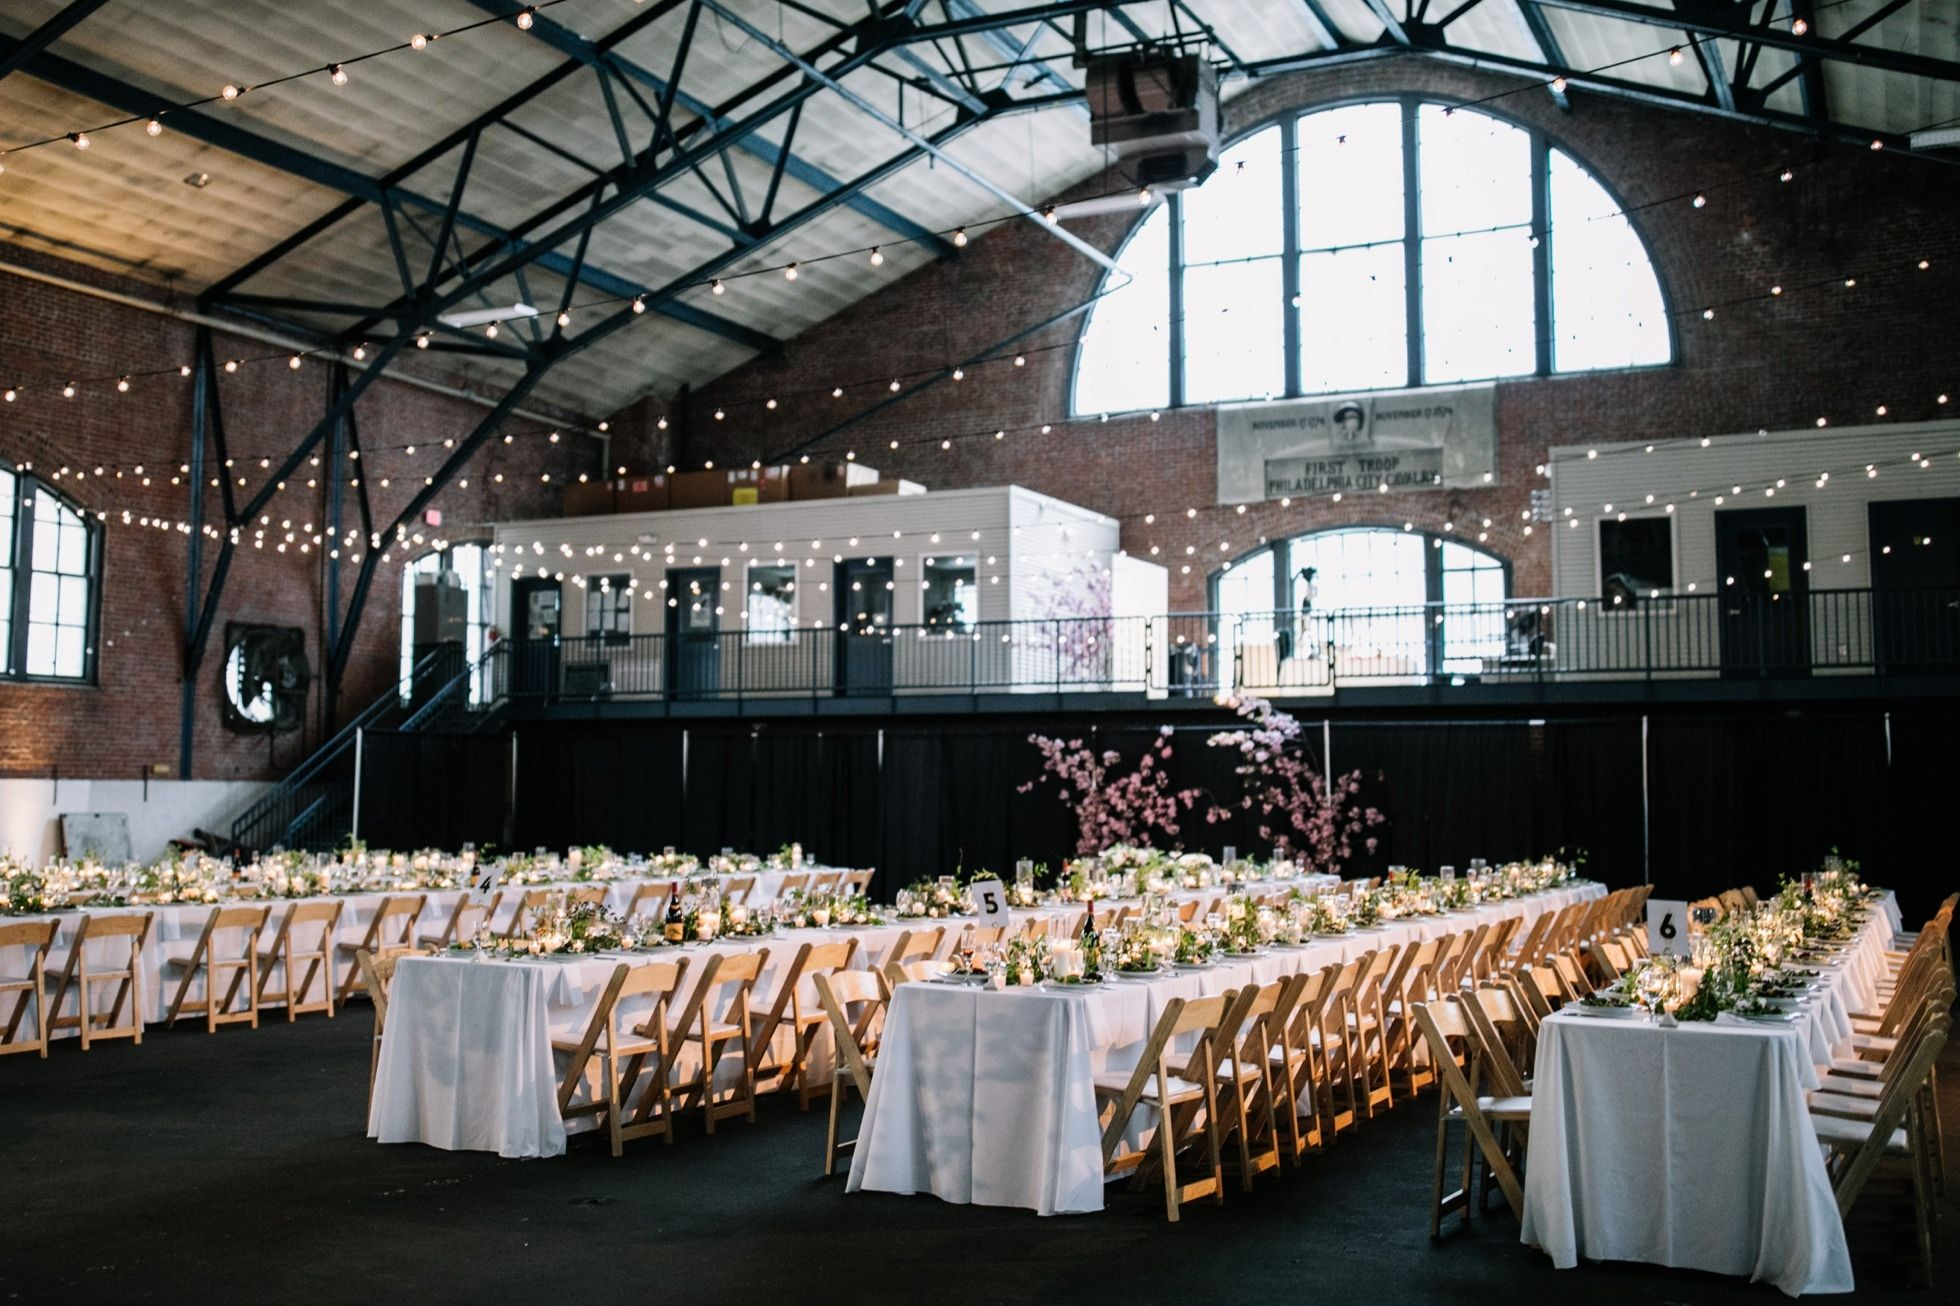 Best Unique Pa Ny Nj Wedding Venues 23rd St Armory Industrial Warehouse Indoor Modern Loc Philadelphia Wedding Venues Nj Wedding Venues Wedding Venues Indoor